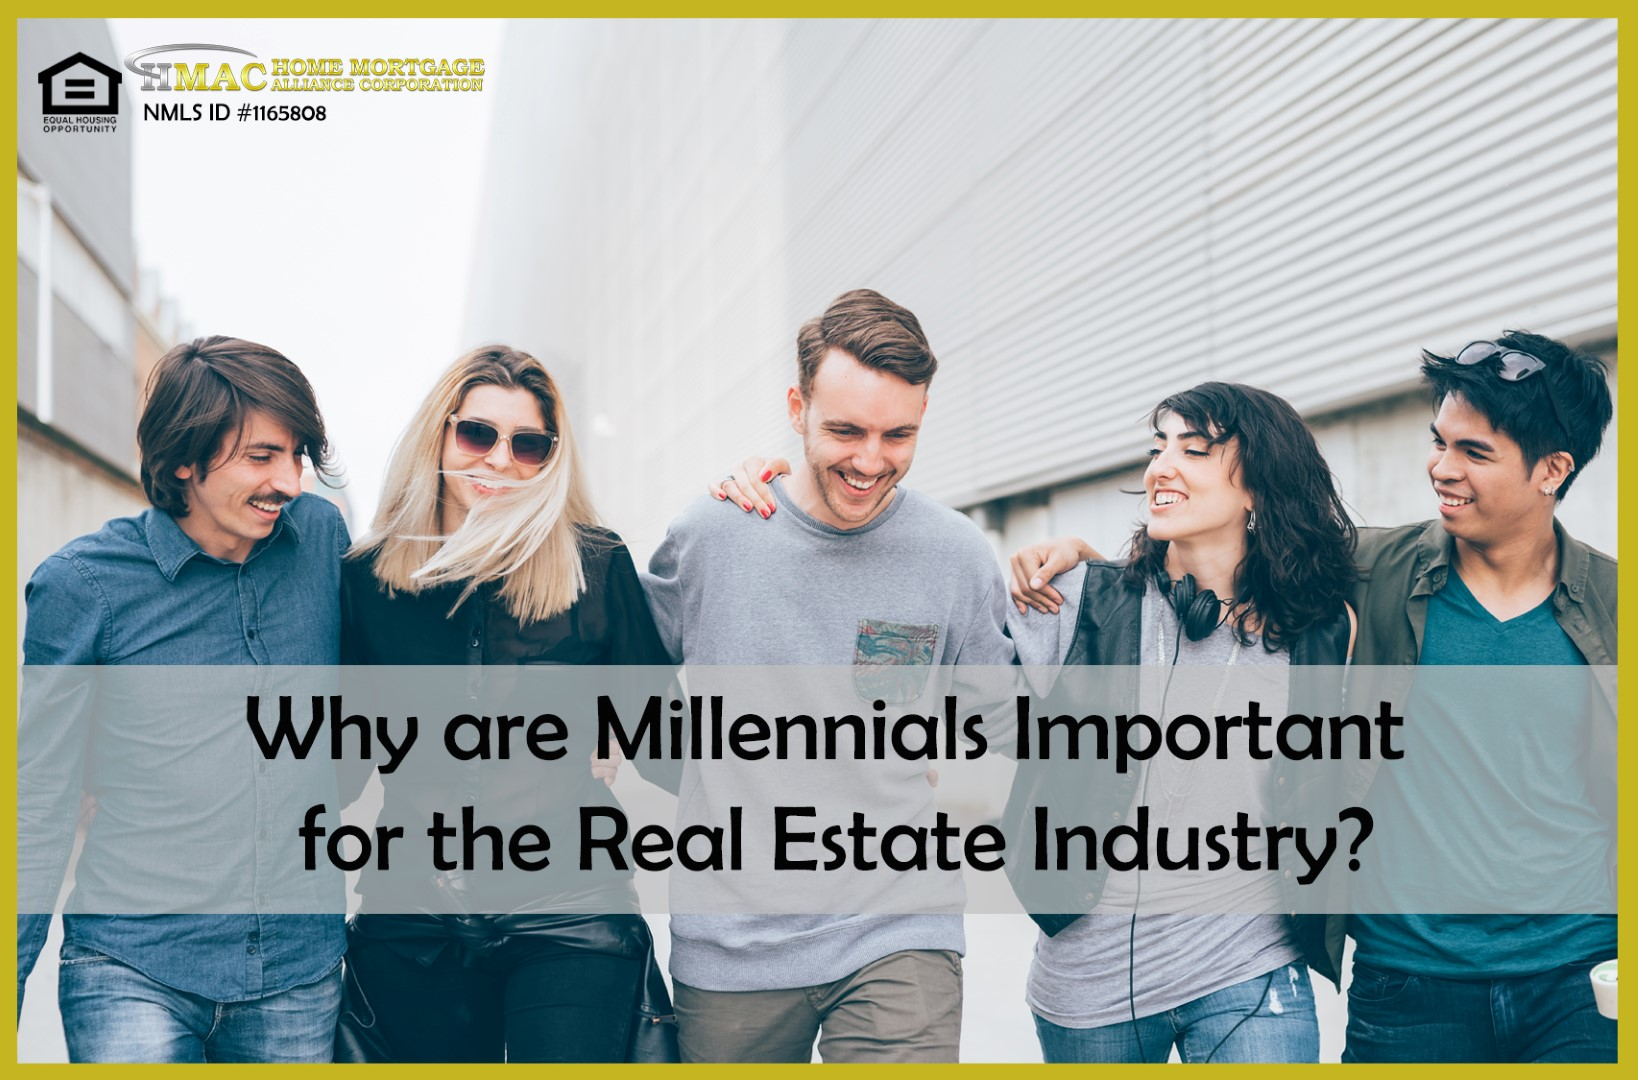 Importance of Millennials to Real Estate Industry